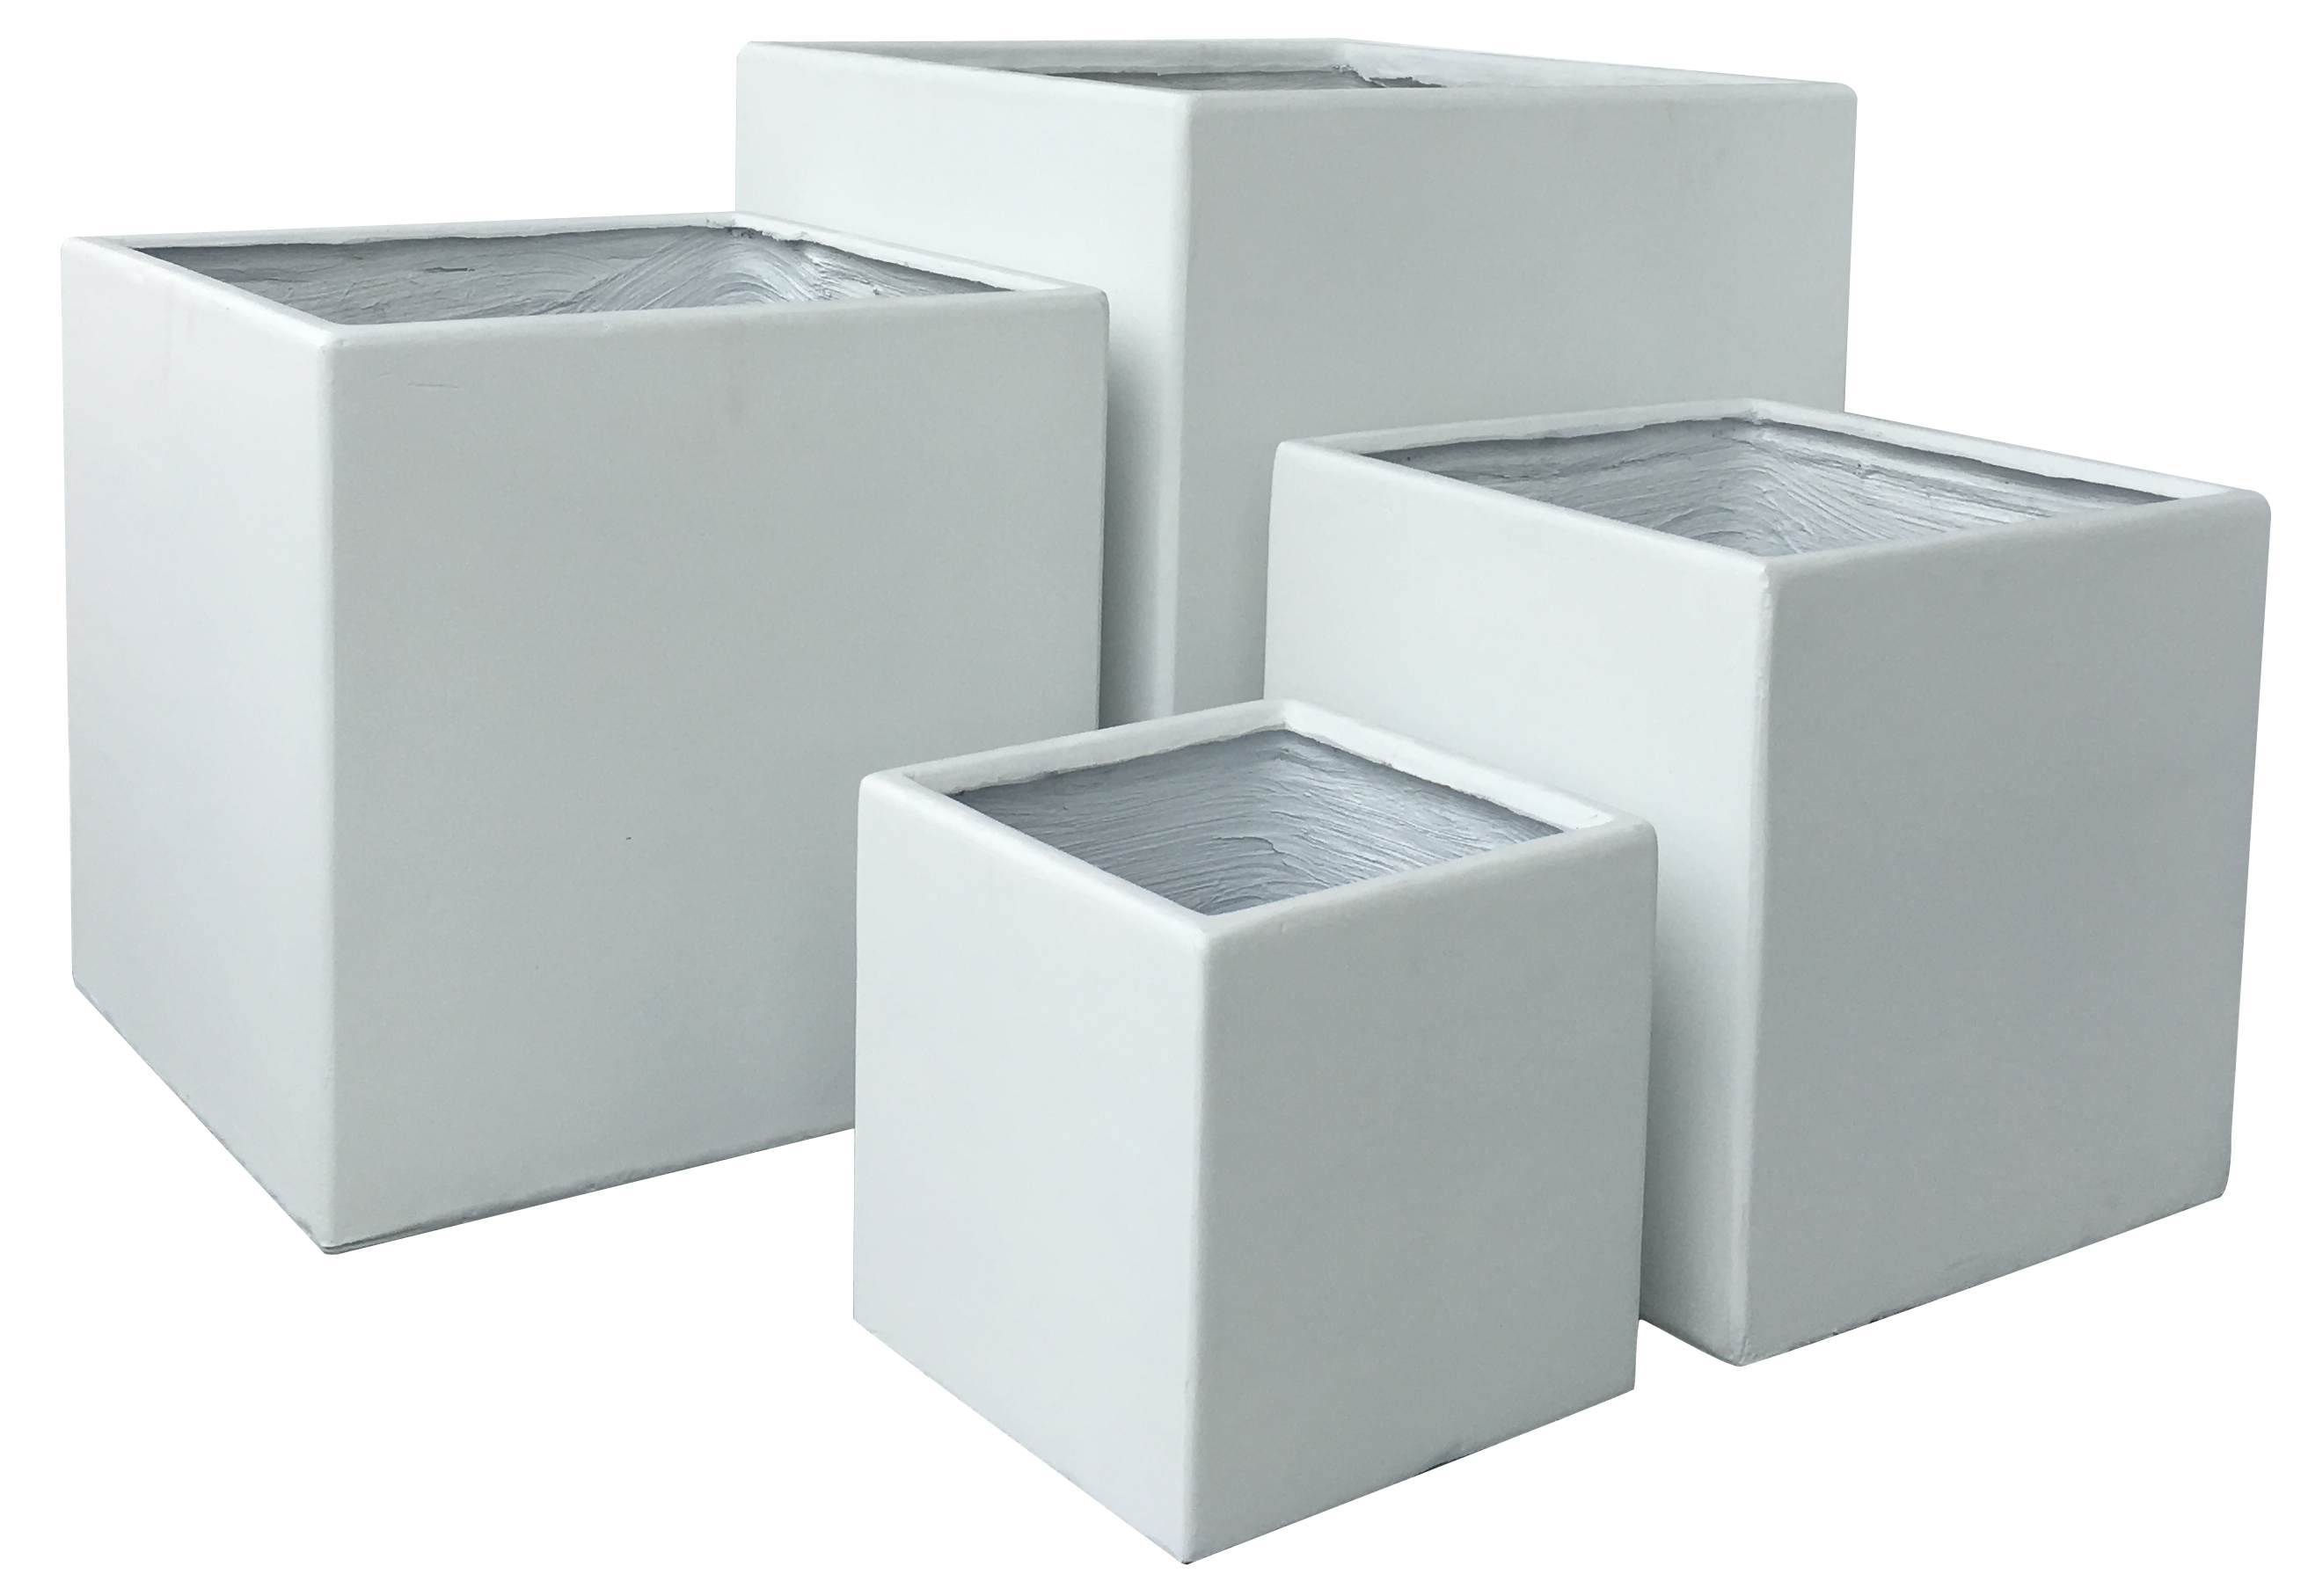 Pflanzkübel Steinoptik Lounge Cube Pot Set White Andalusien Vintage White Pflanztopf Set Quadratisch In Weiß 4er Set